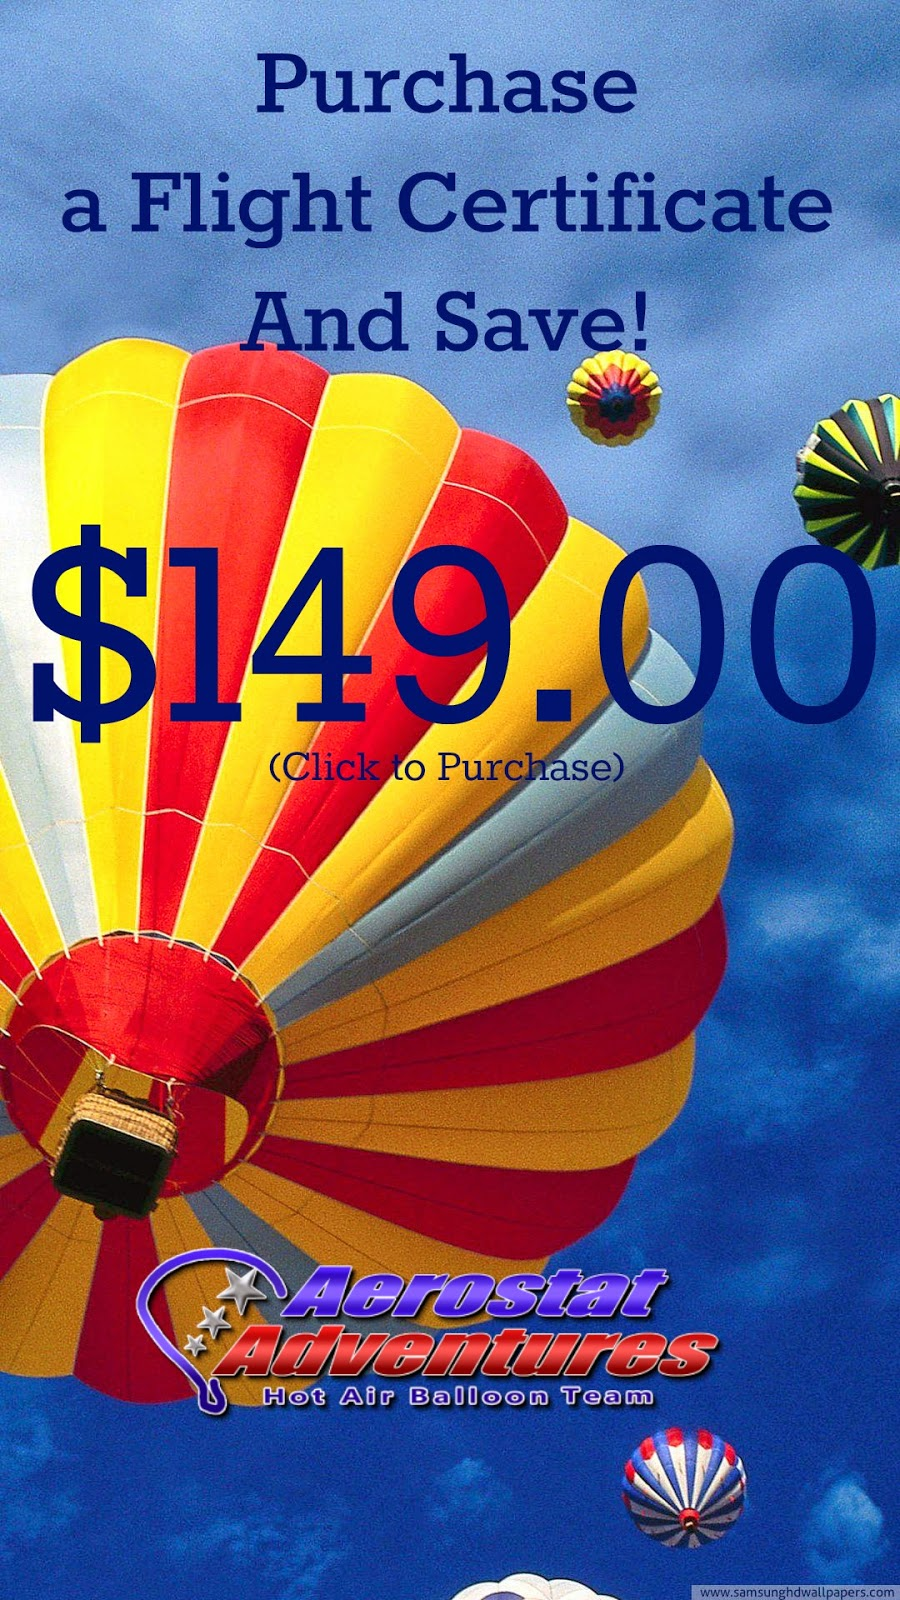 Flight Certificates for a Hot Air Balloon Ride in Orlando